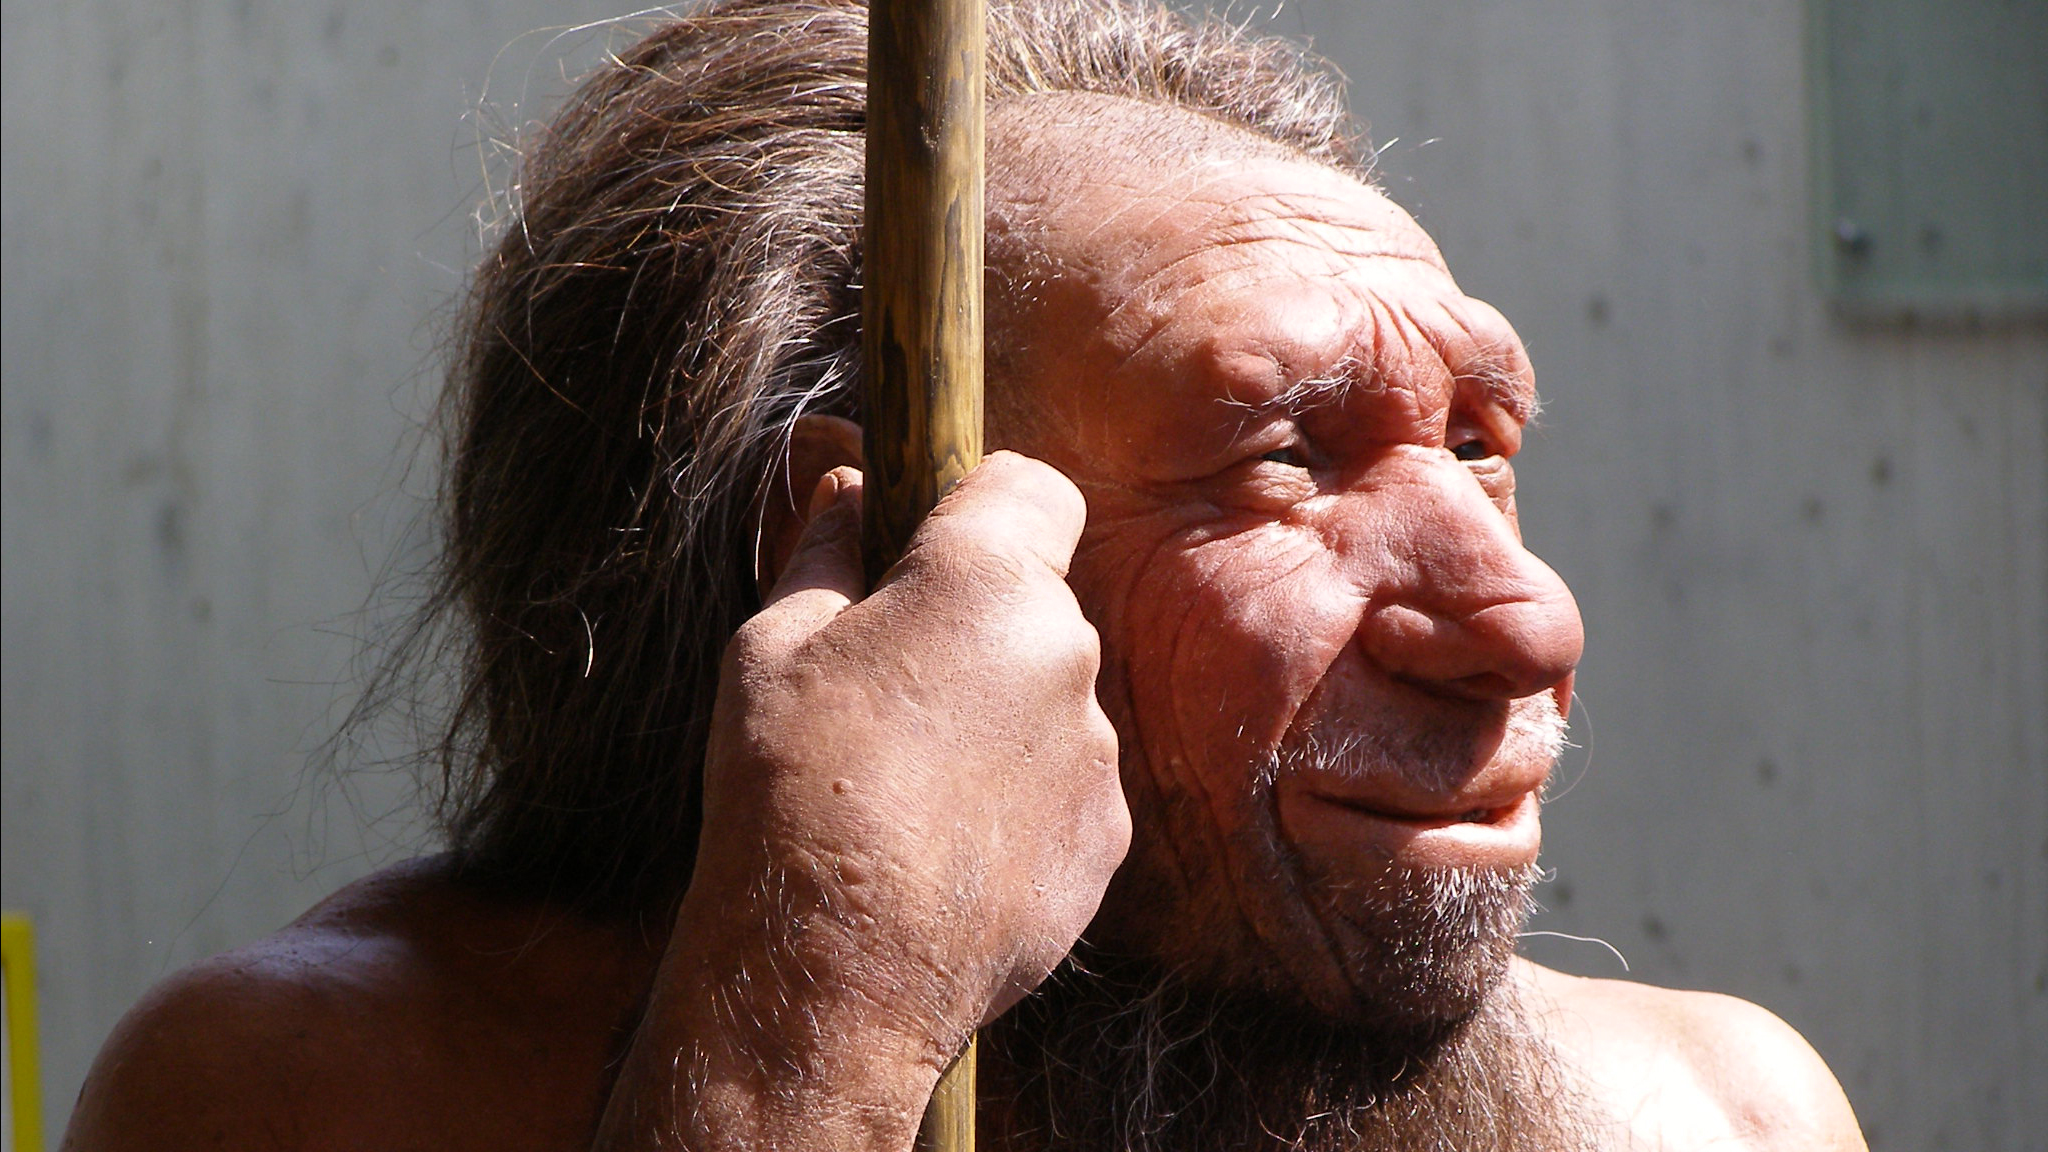 Neanderthal Museum exhibit (in Germany). Photo © Erich Ferdinand / Flickr through a Creative Commons license